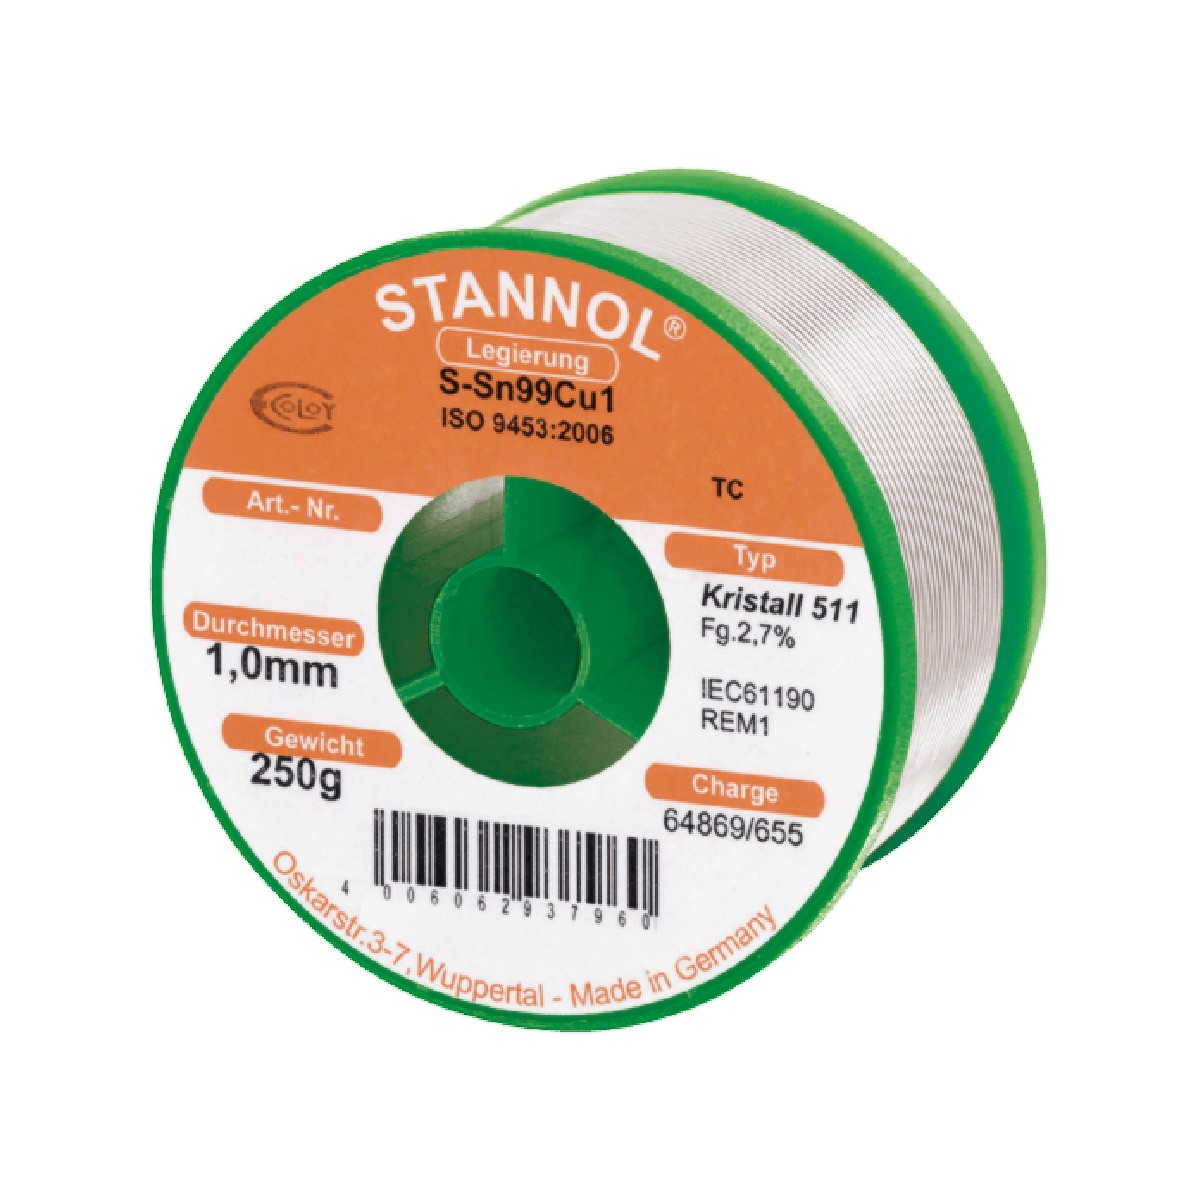 Soldering Tin - Stannol Crystal 250g / 1mm